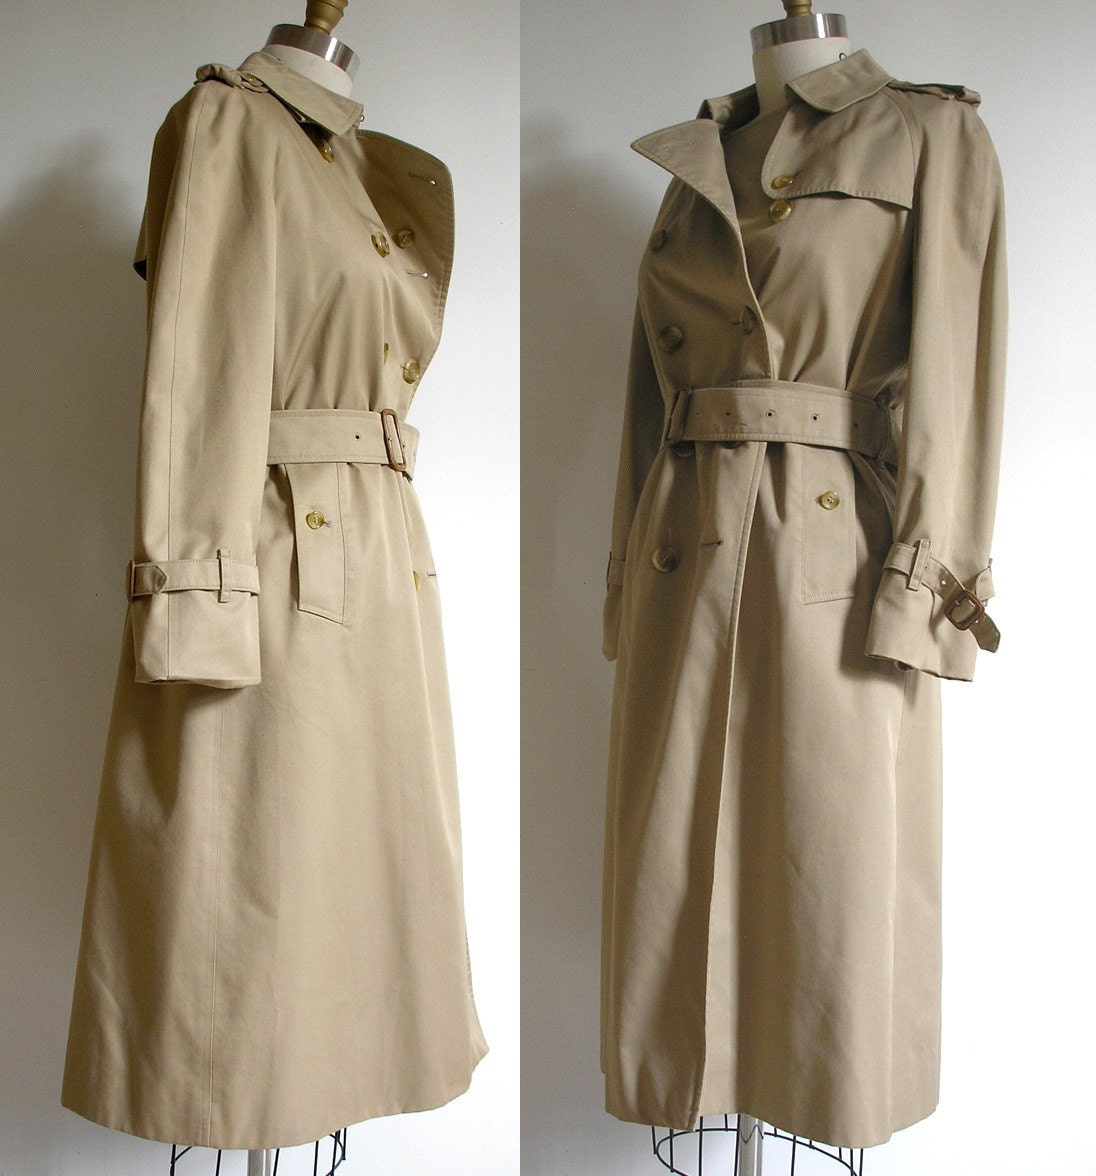 burberry trench coat outlet c3vl  burberry trench coat outlet